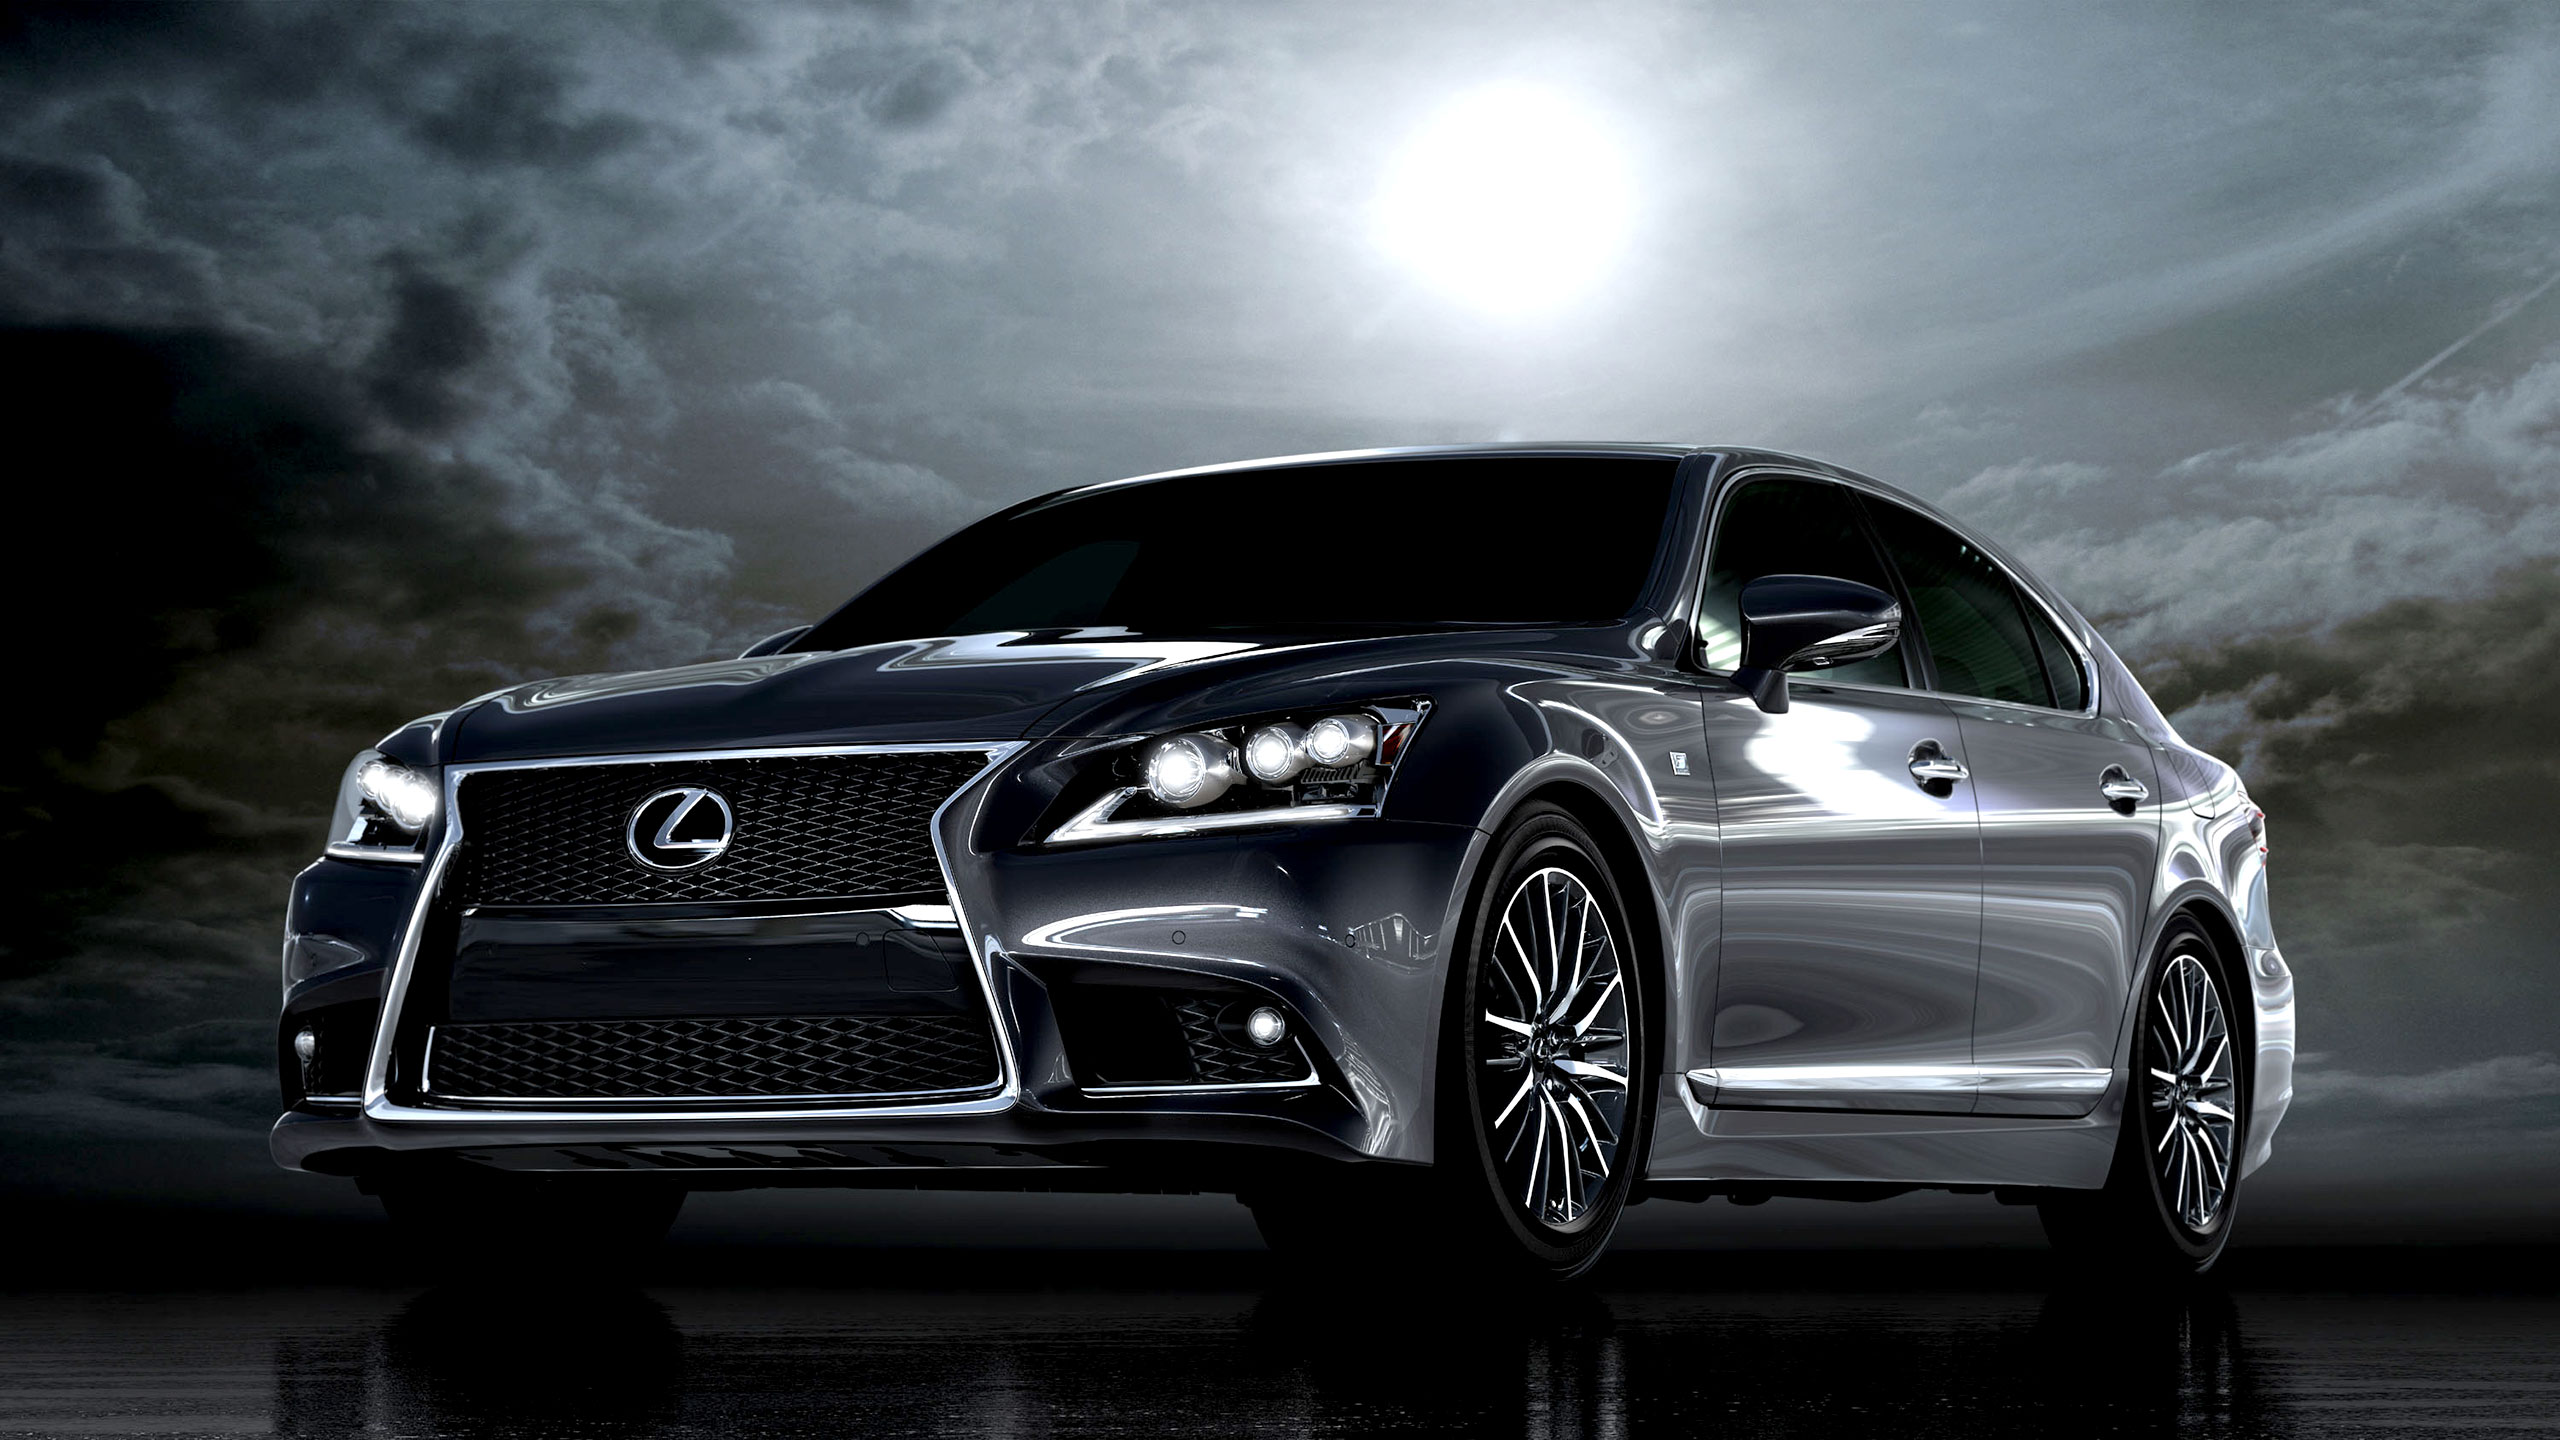 Have you ever seen this upgraded Lexus 2013 GS model? #1